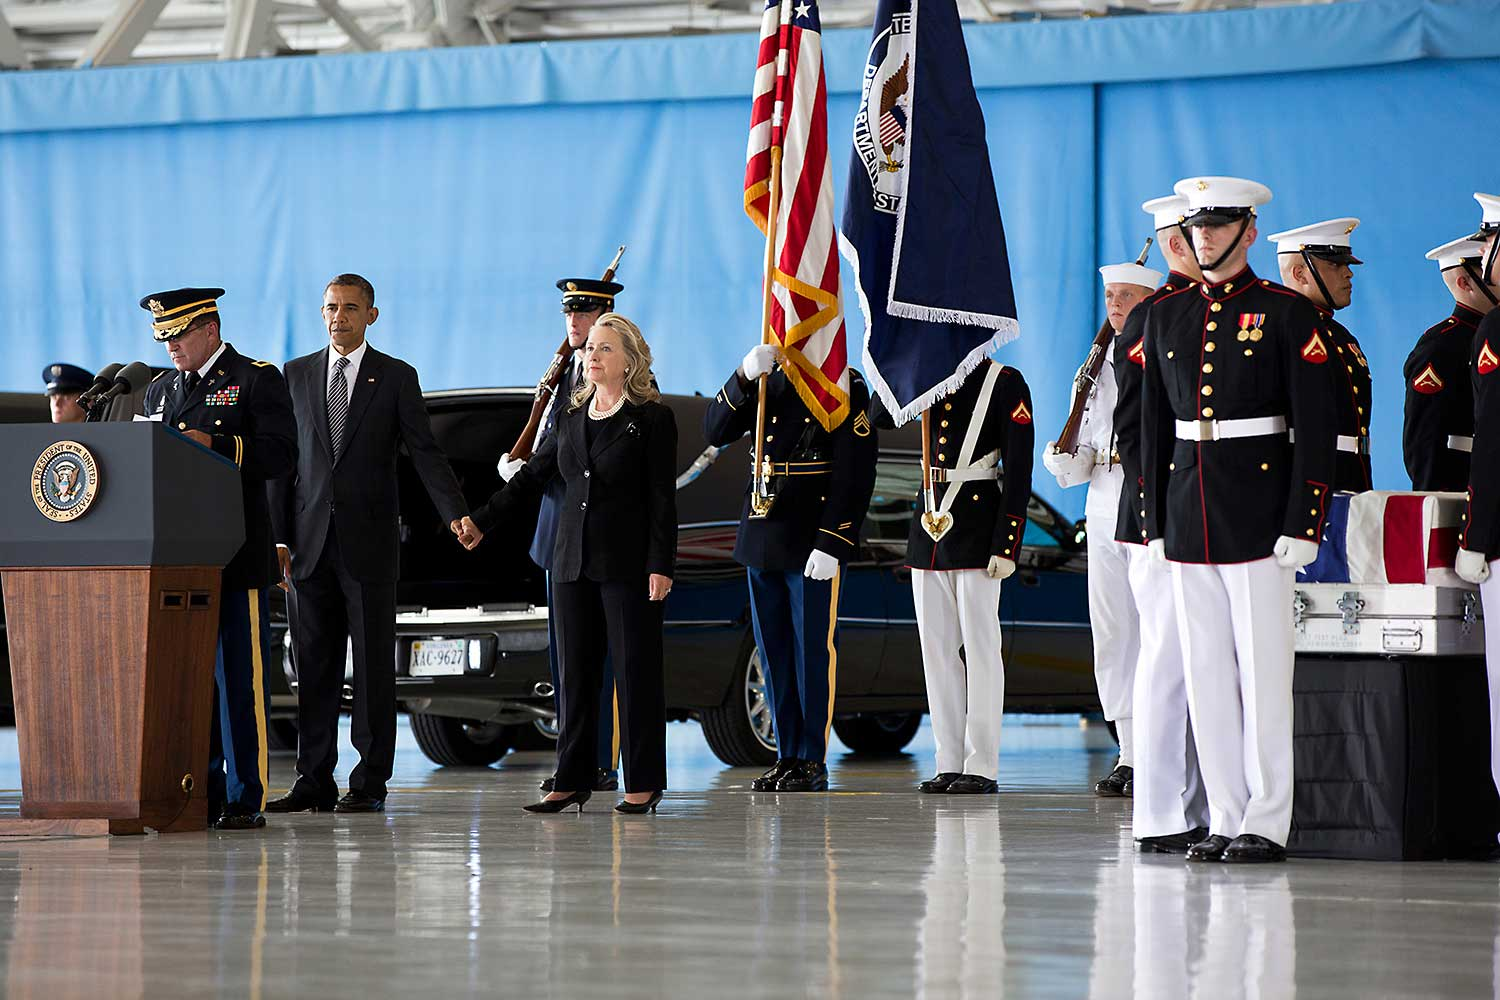 President Barack Obama, Vice President Joe Biden and Secretary of State Hillary Rodham Clinton attend the dignified transfer at Joint Base Andrews, Maryland, Sept. 14, 2012, of J. Christopher Stevens, U.S. Ambassador to Libya; Sean Smith, Information Management Officer; and Security Personnel Glen Doherty and Tyrone Woods, who were killed in the attack on the U.S. Consulate in Benghazi, Libya.